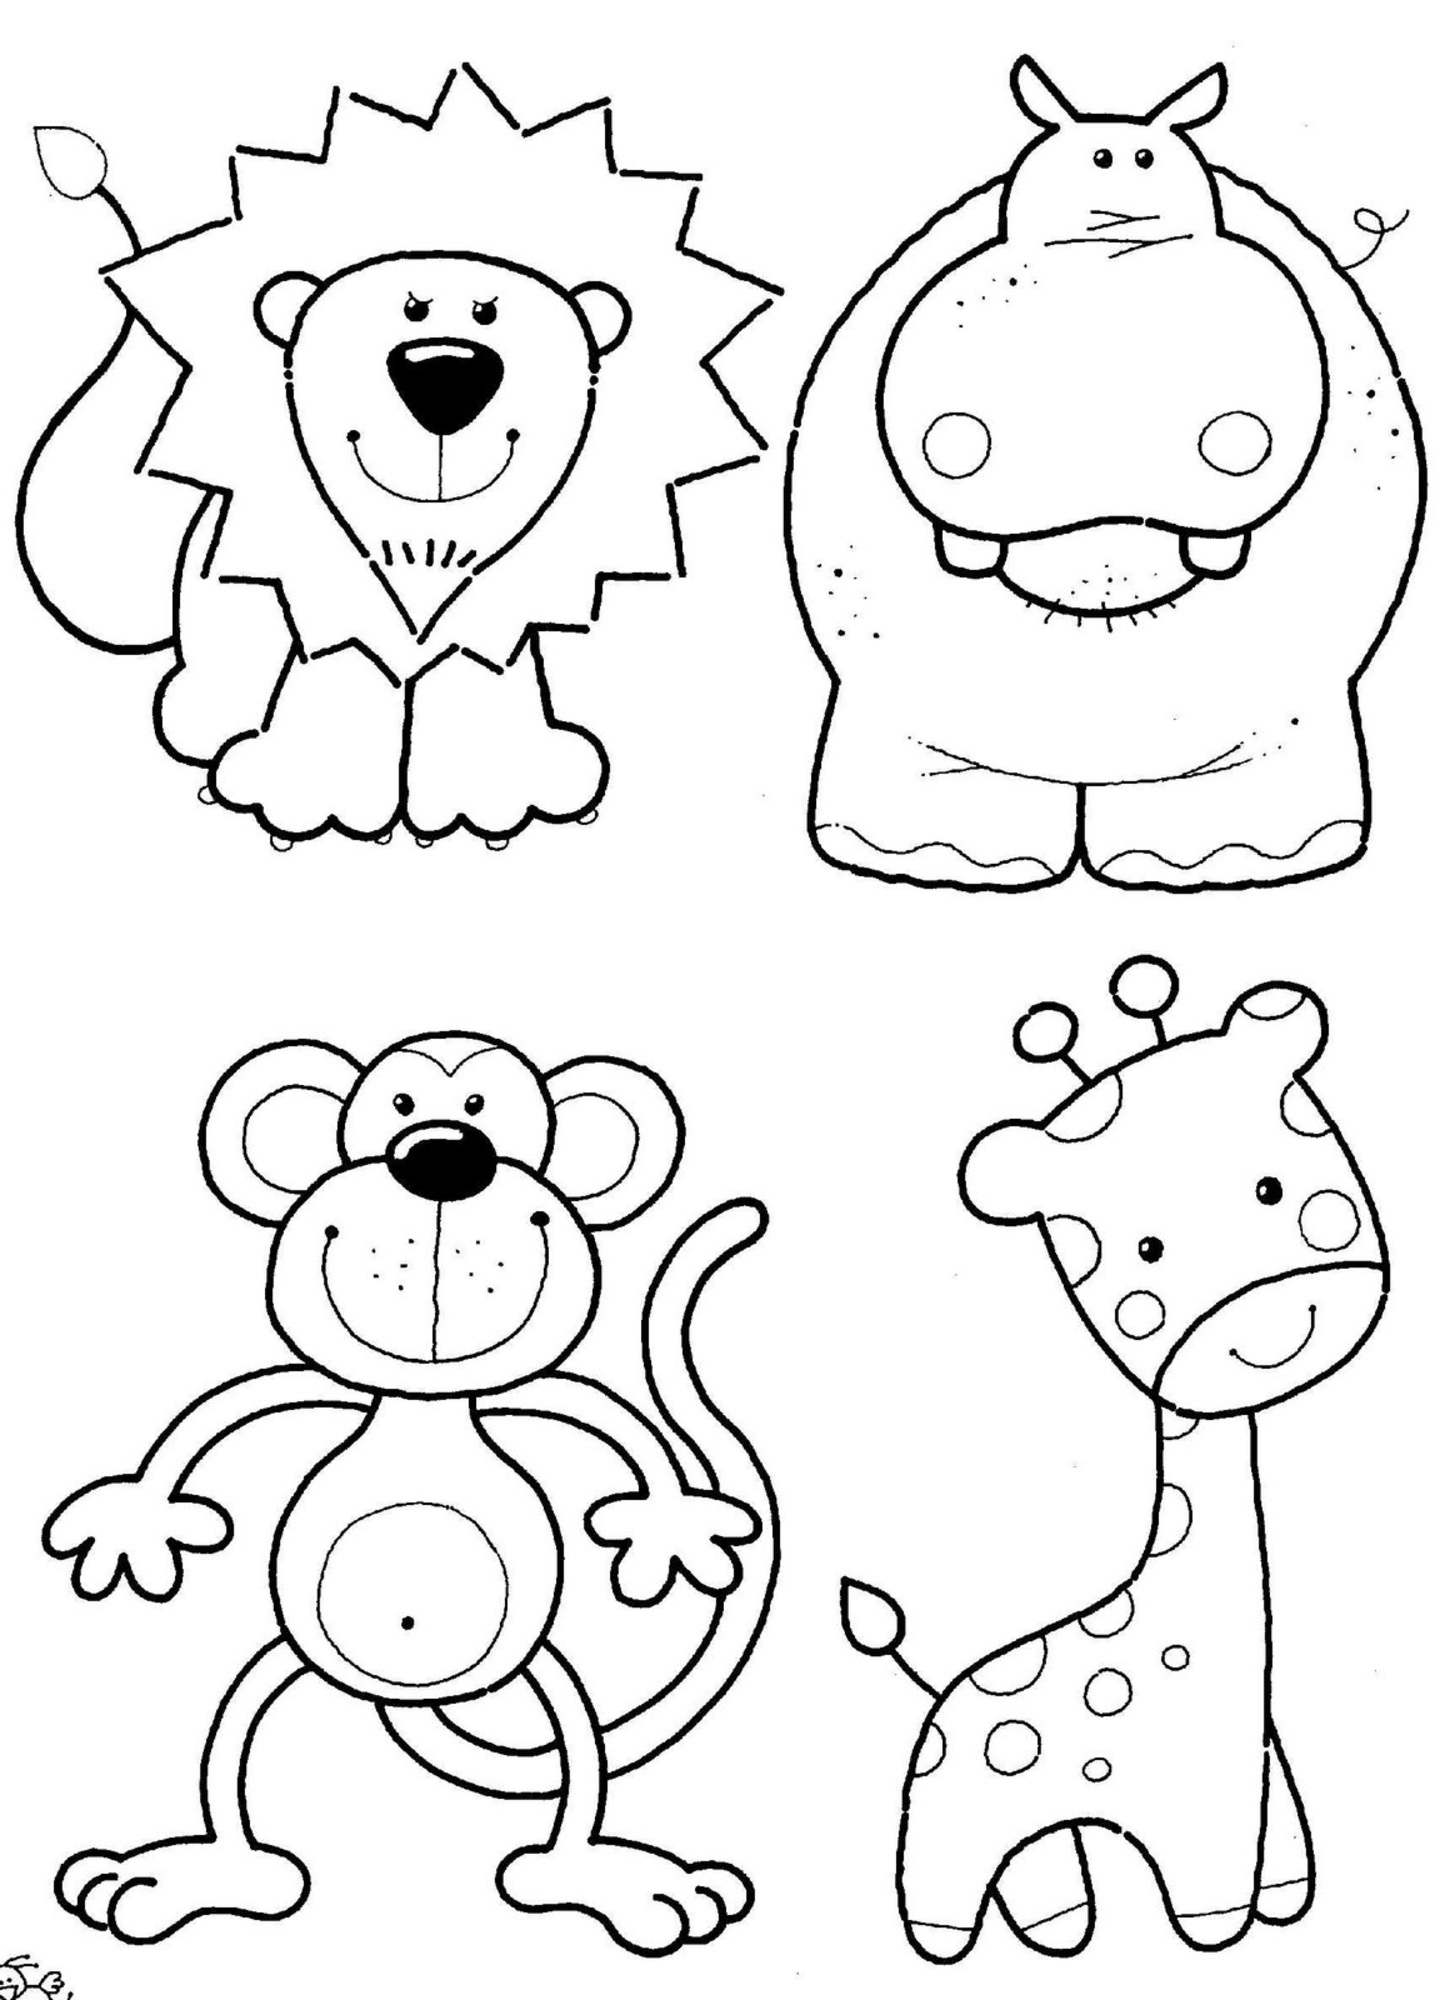 free printable animal colouring pages 30 free printable geometric animal coloring pages the colouring free printable animal pages